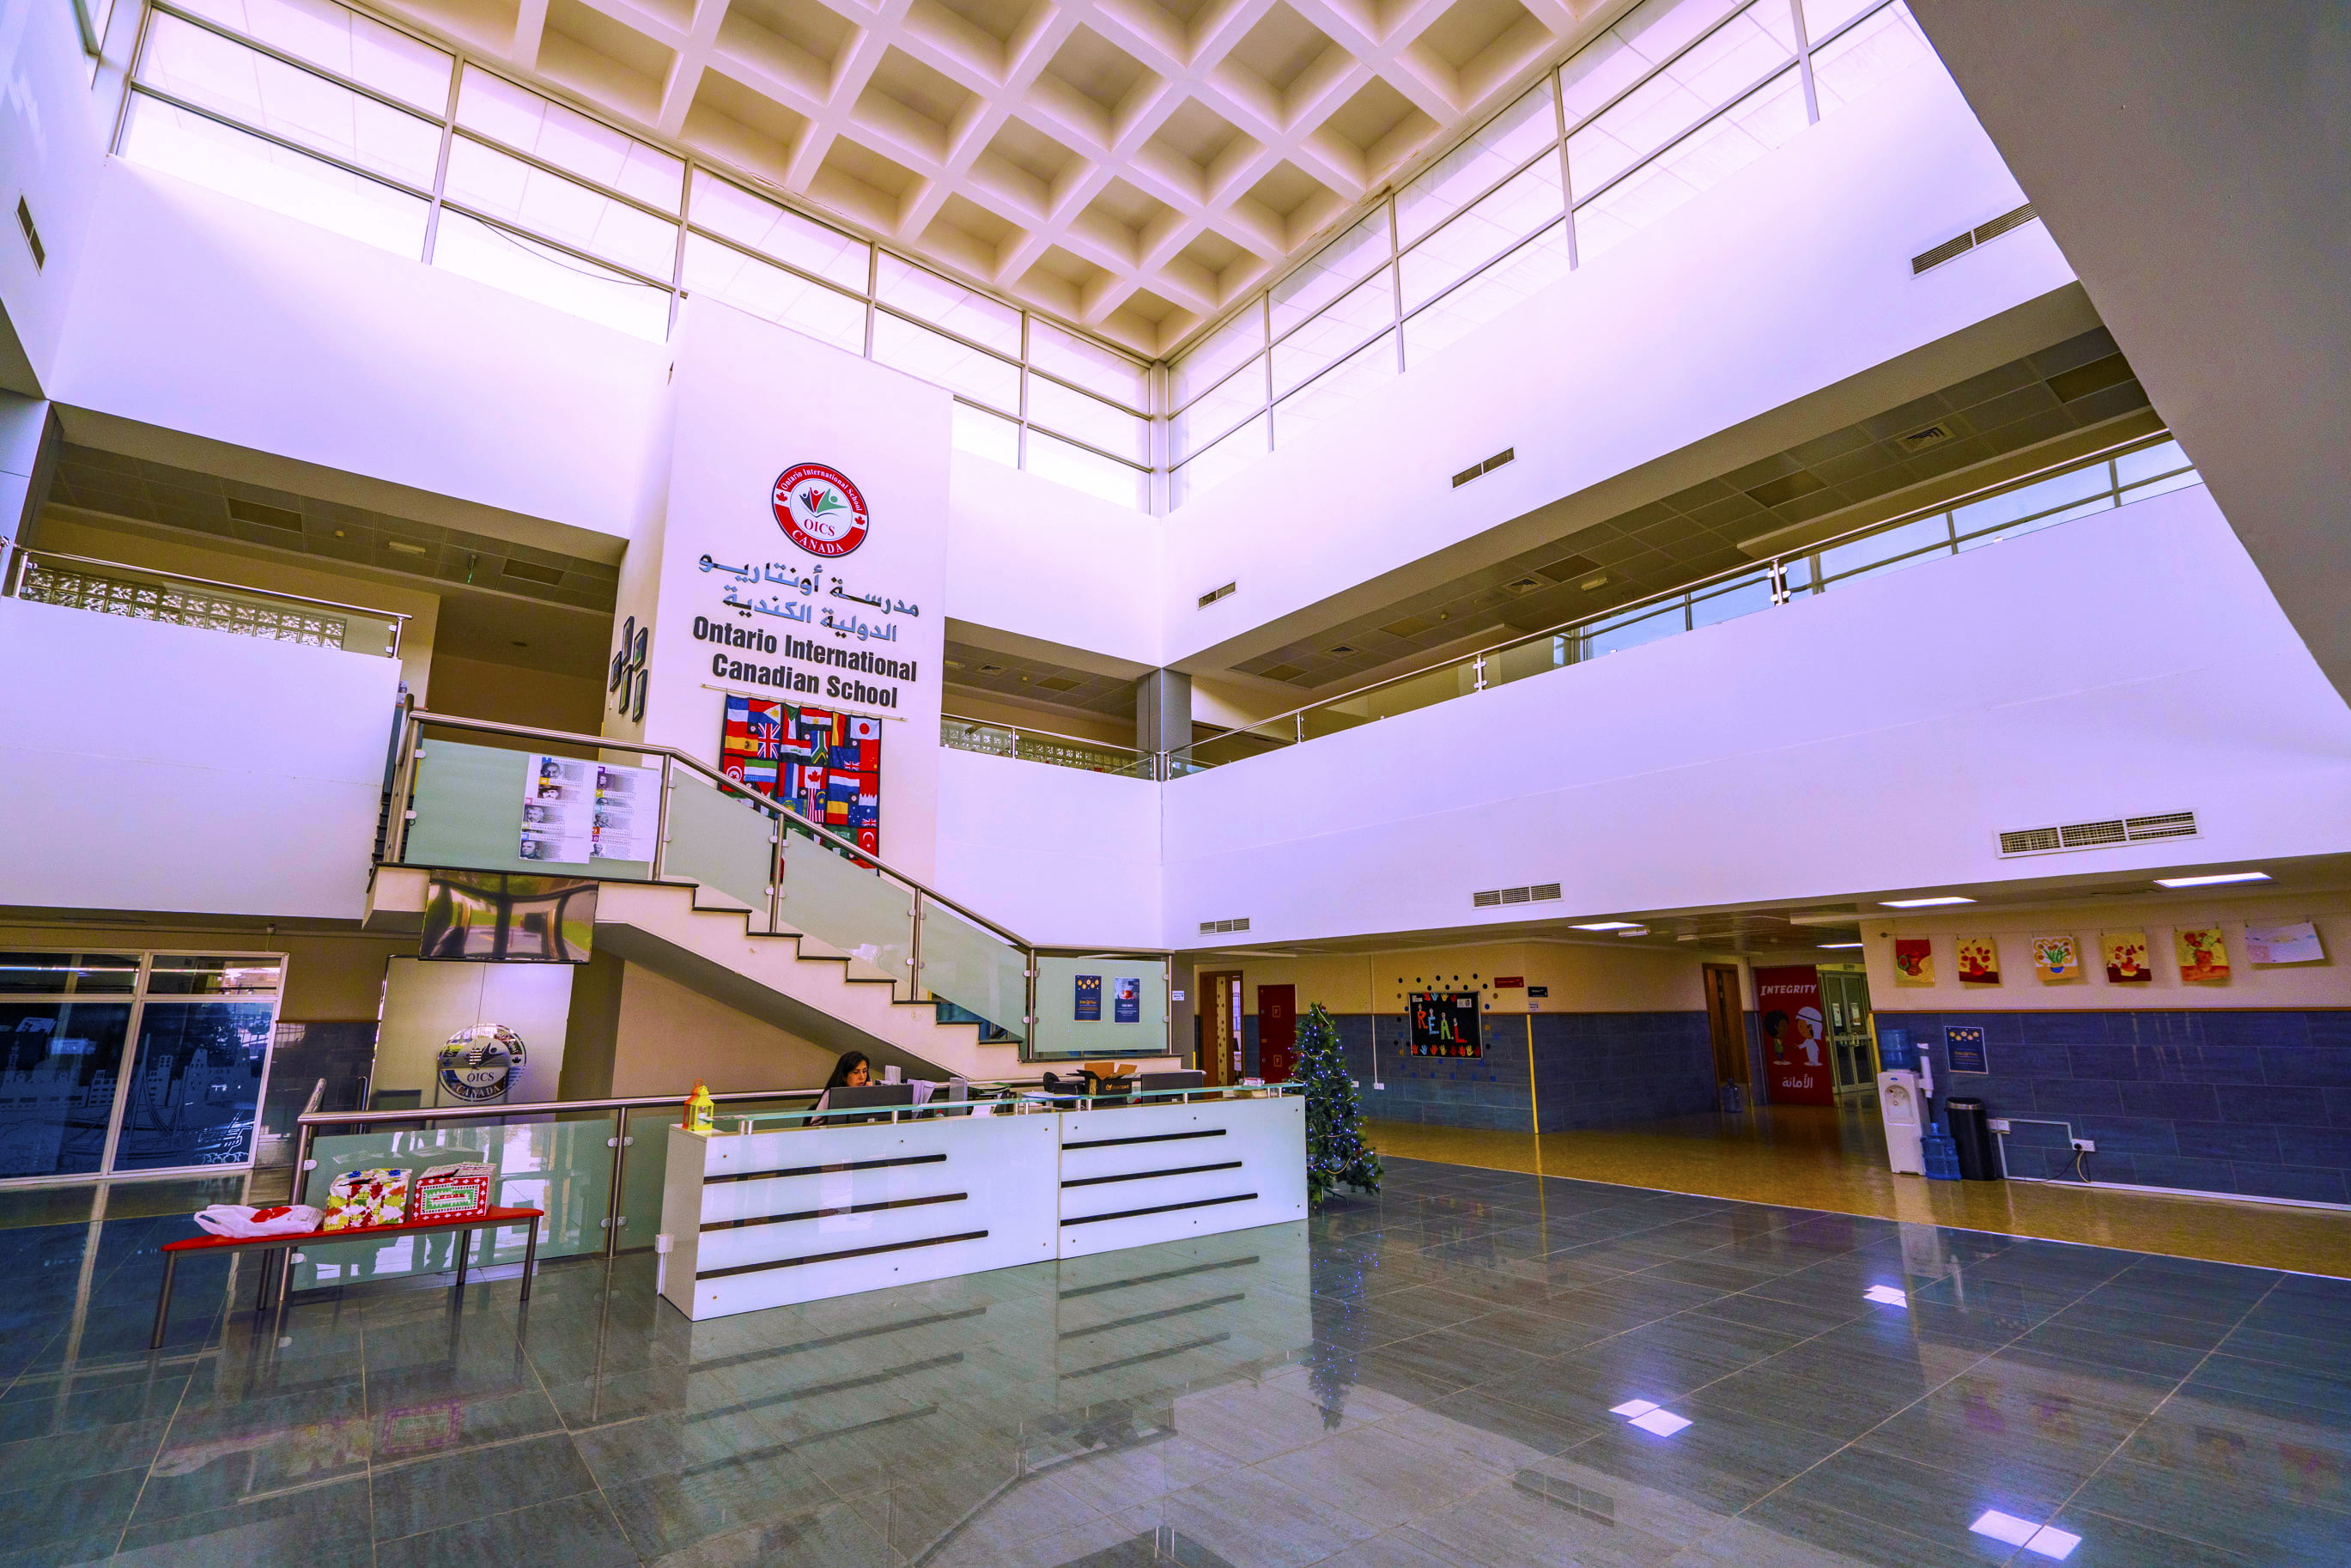 The entrance reception area and atrium at Ontario International Canadian School in Dubai